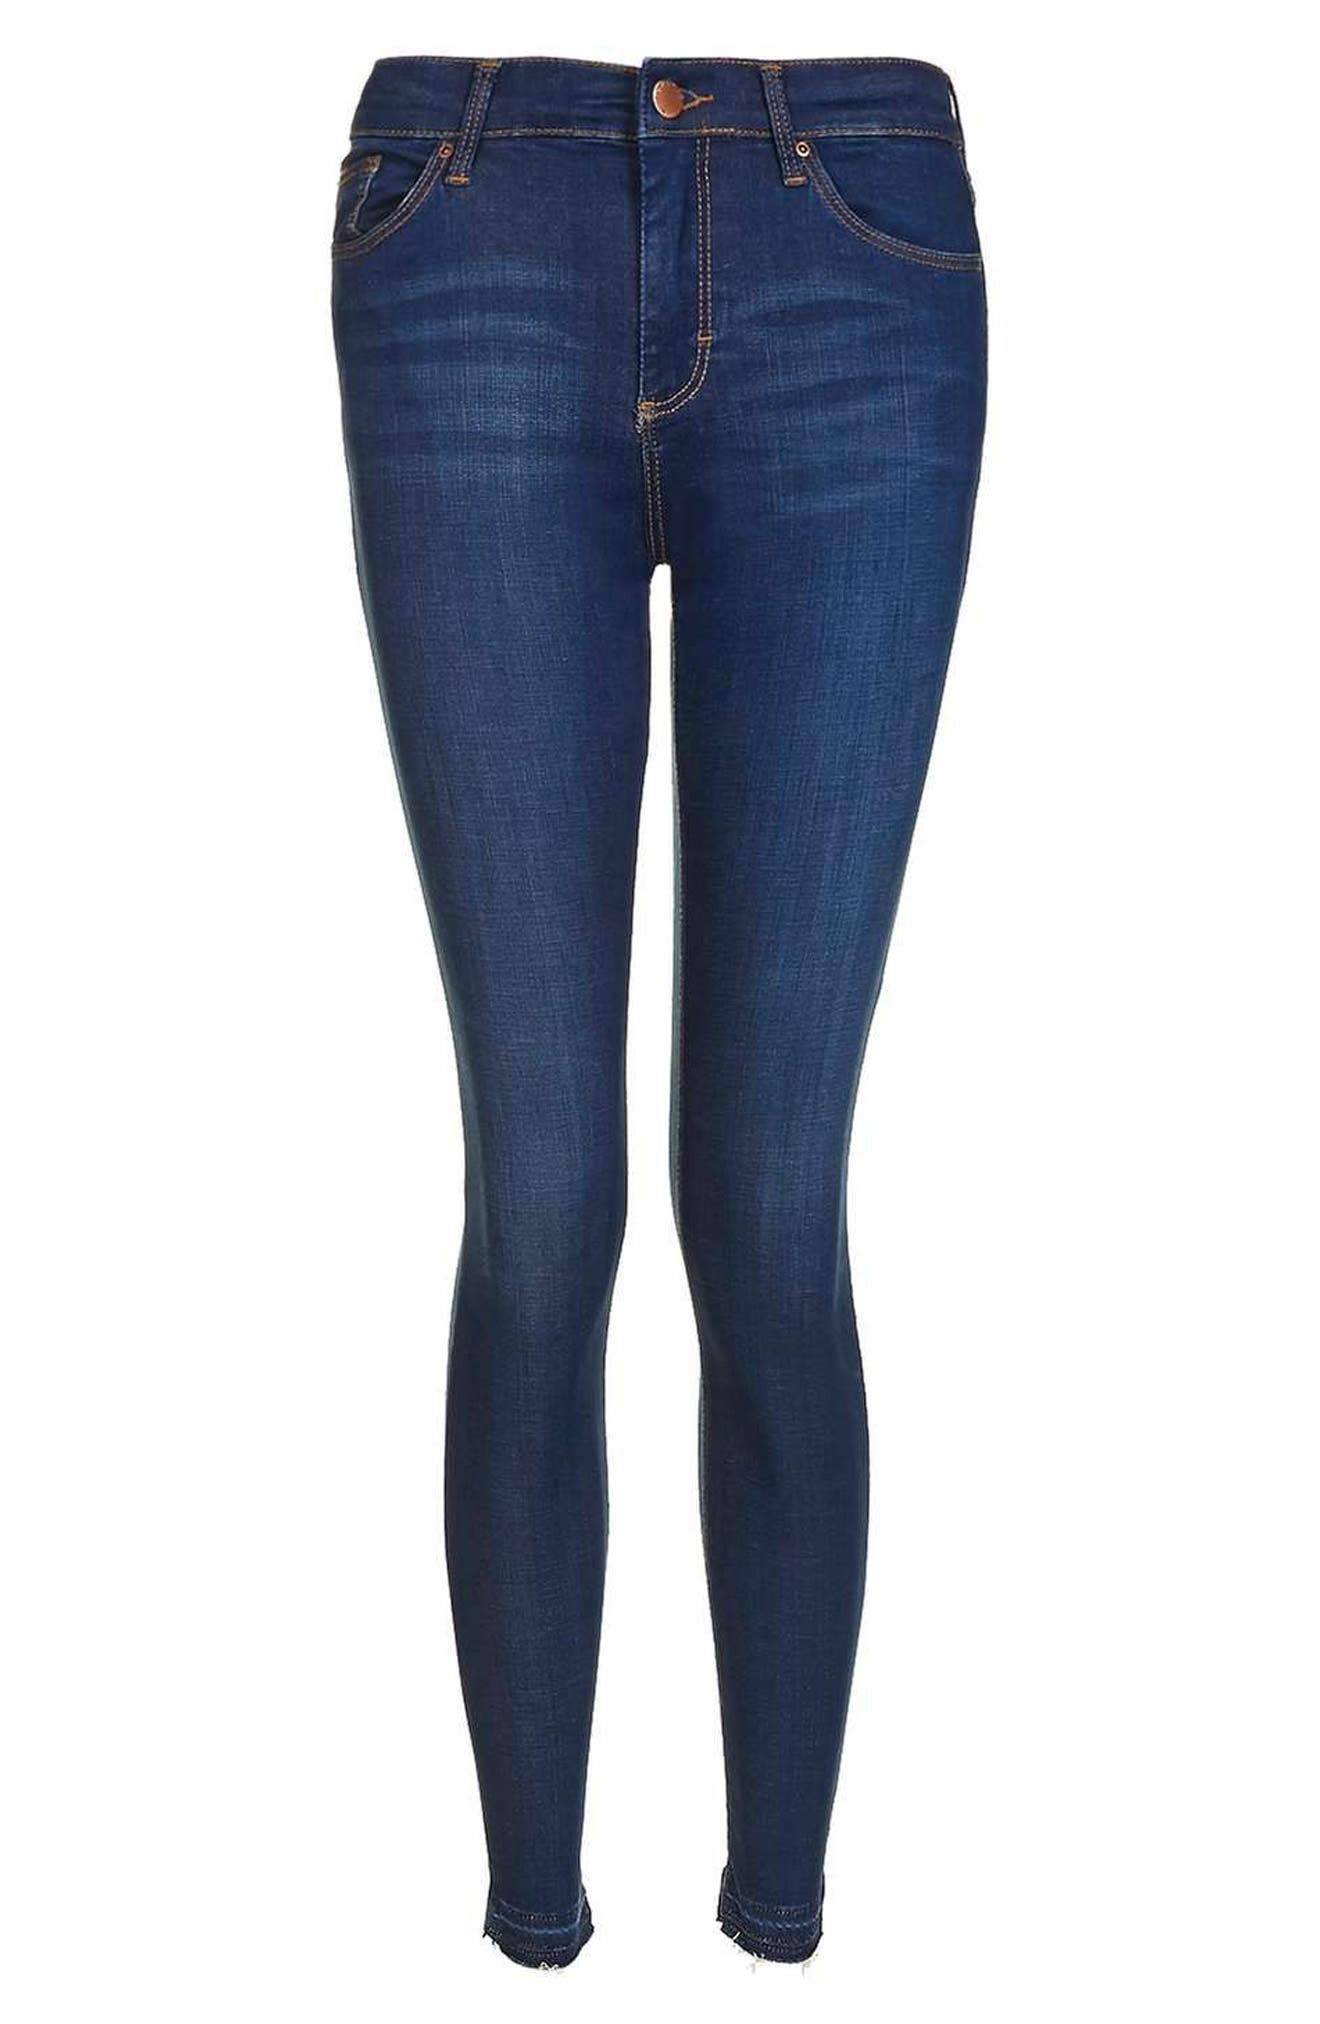 Leigh Released Hem Skinny Jeans,                             Alternate thumbnail 4, color,                             Indigo